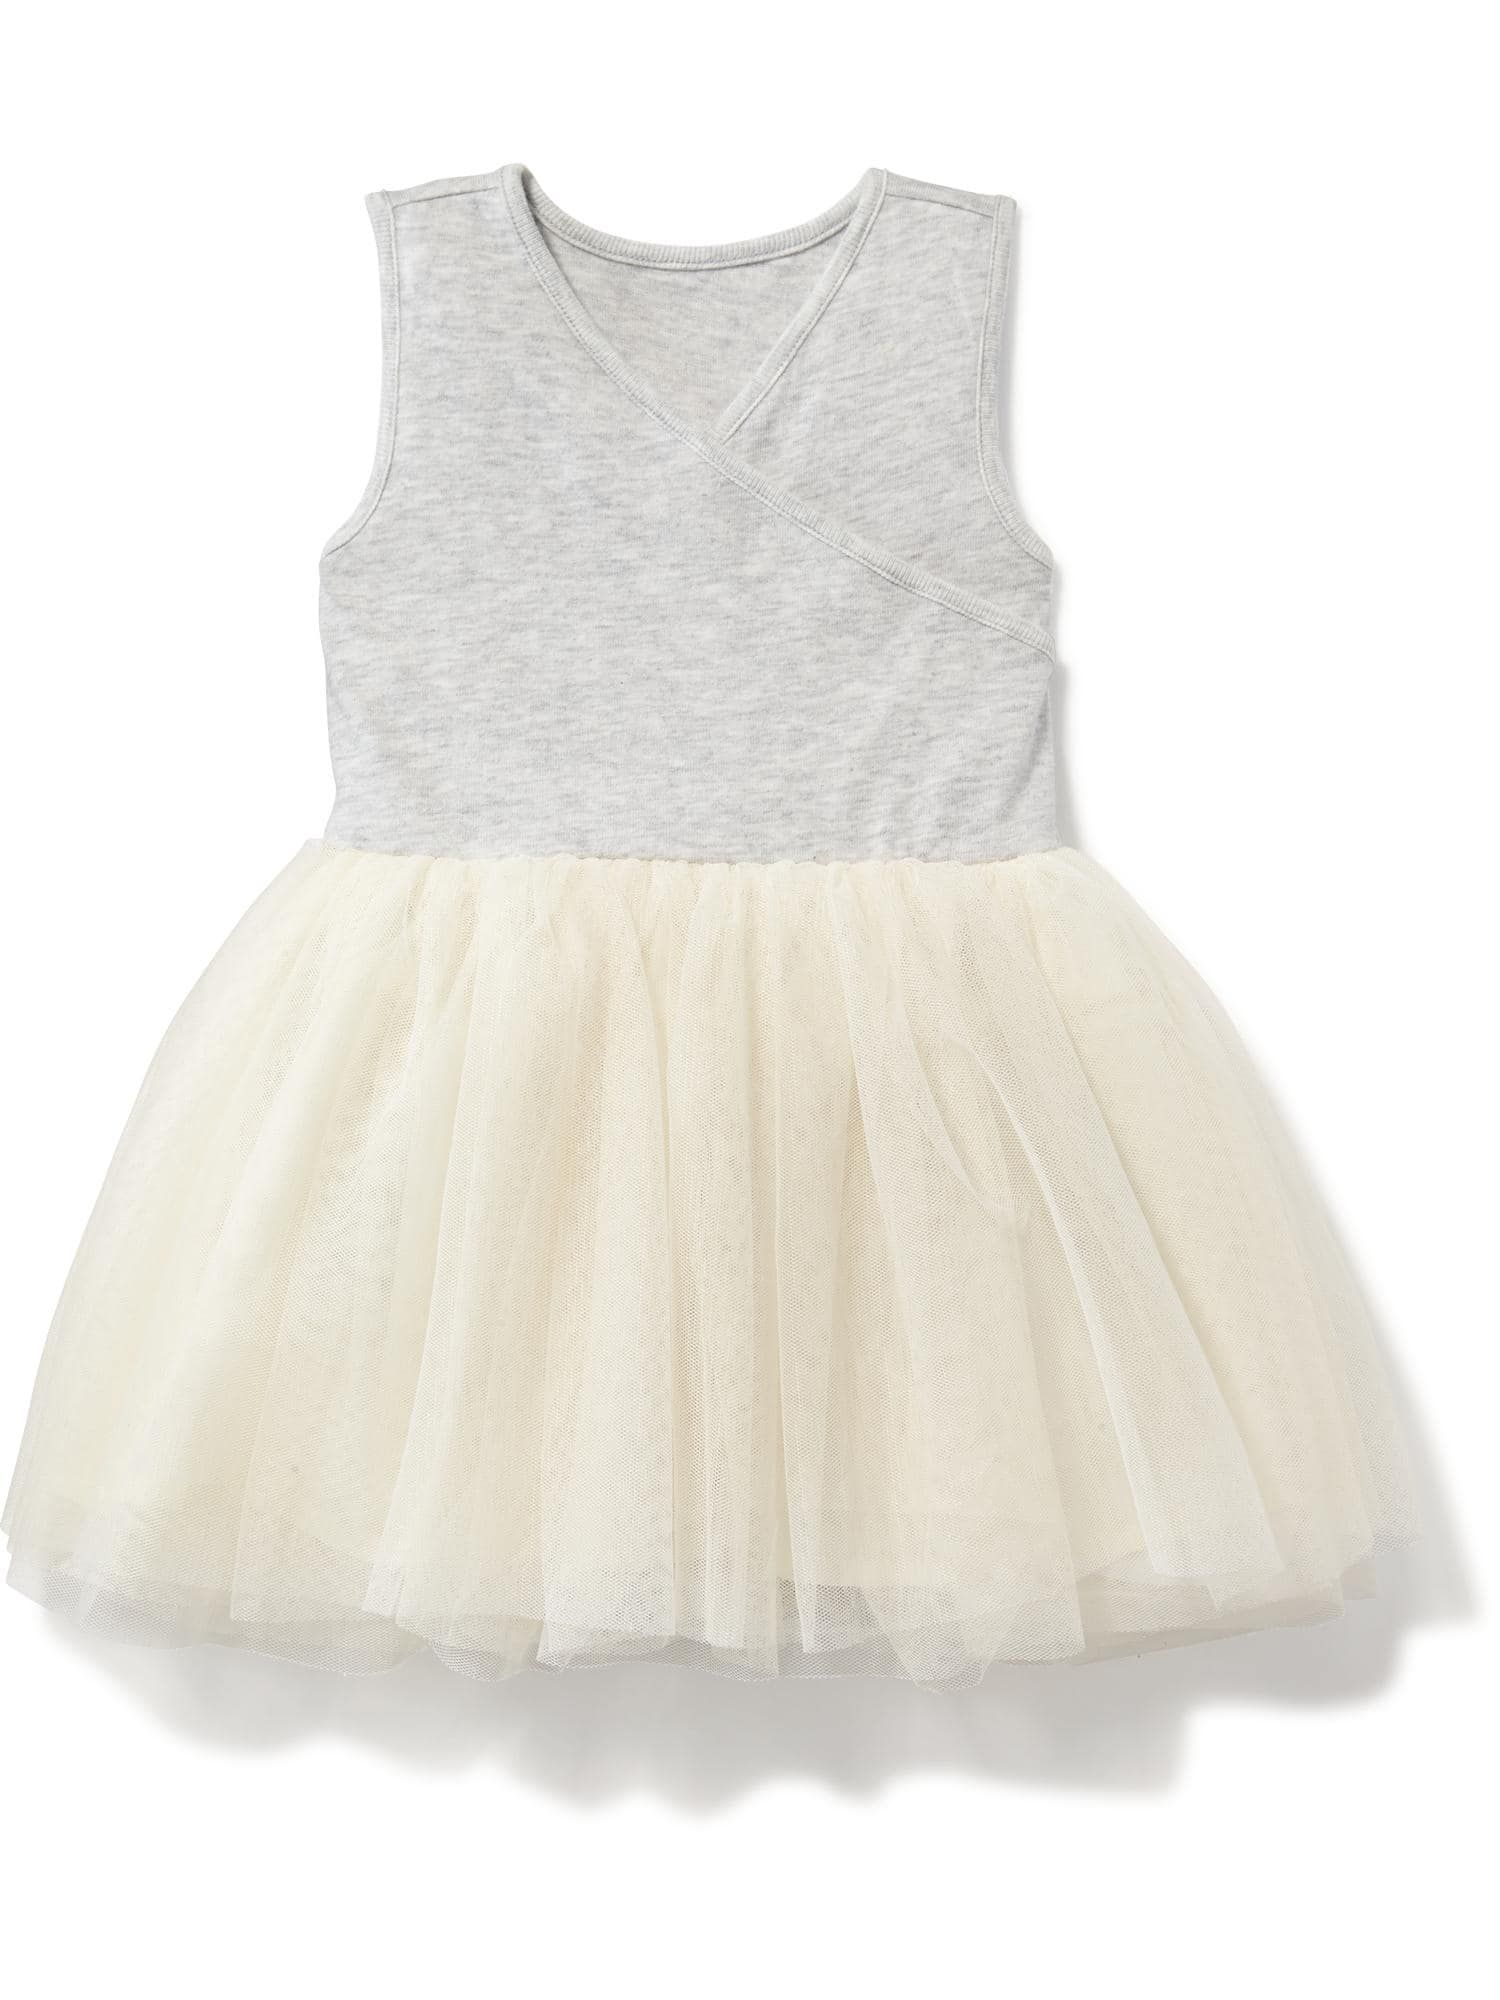 Cross Front Tutu Dress for Baby Old Navy Fashion